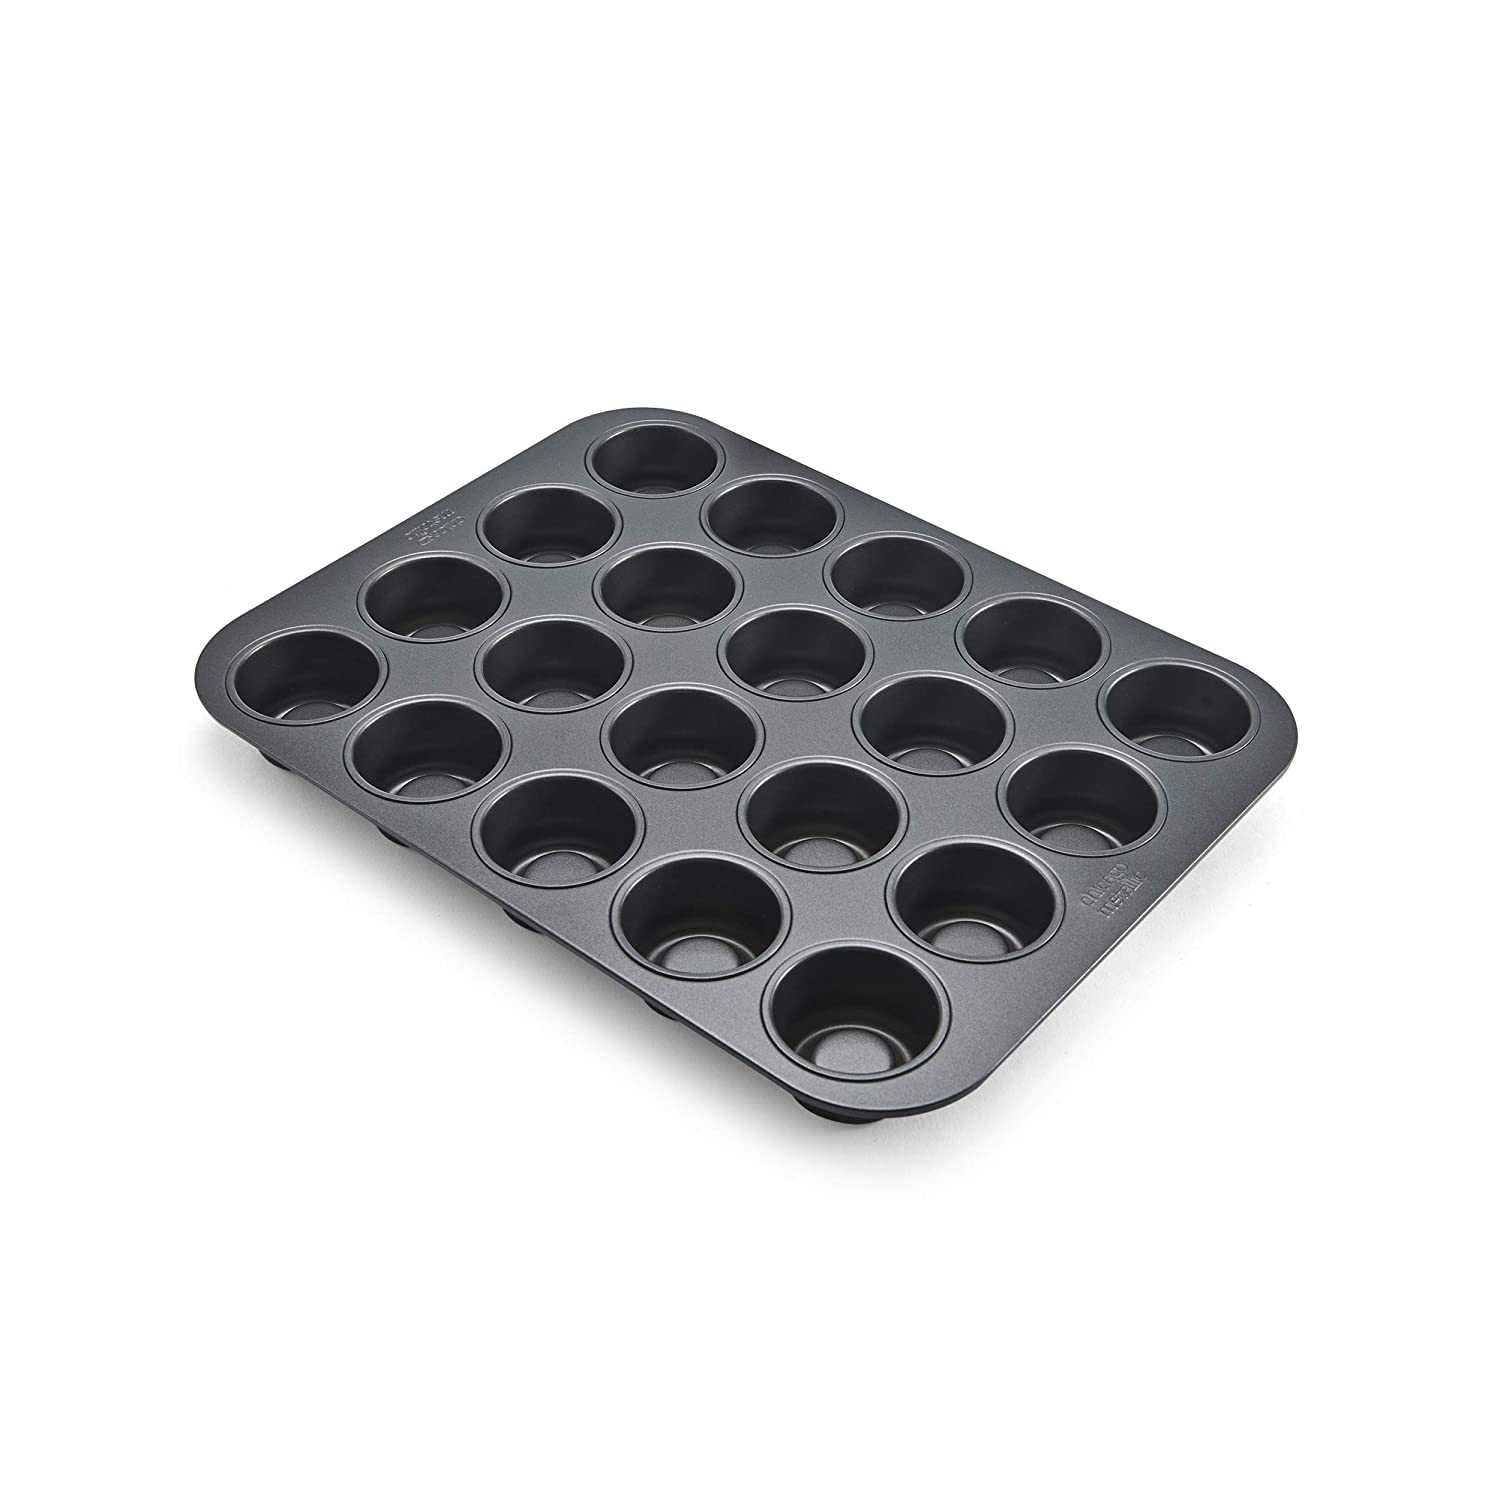 14-Inch-by-10.5-Inch 26636 Chicago Metallic Professional 20-Cup Tea Cake Pan